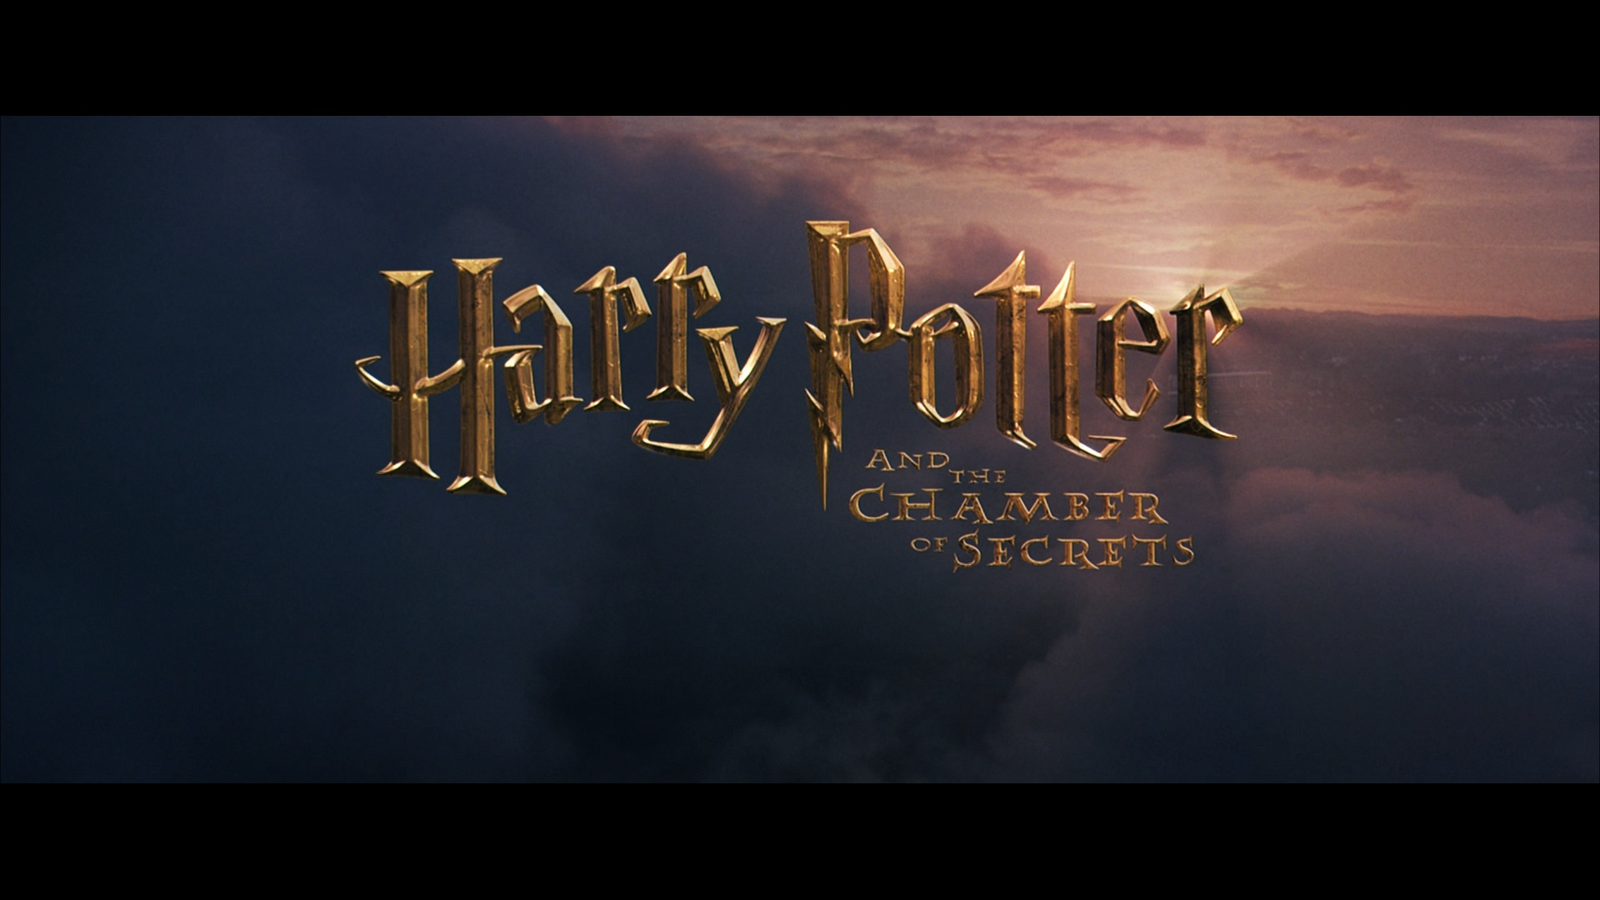 Torrent base harry potter the chamber of secrets movie - Harry potter chambre secrets streaming ...